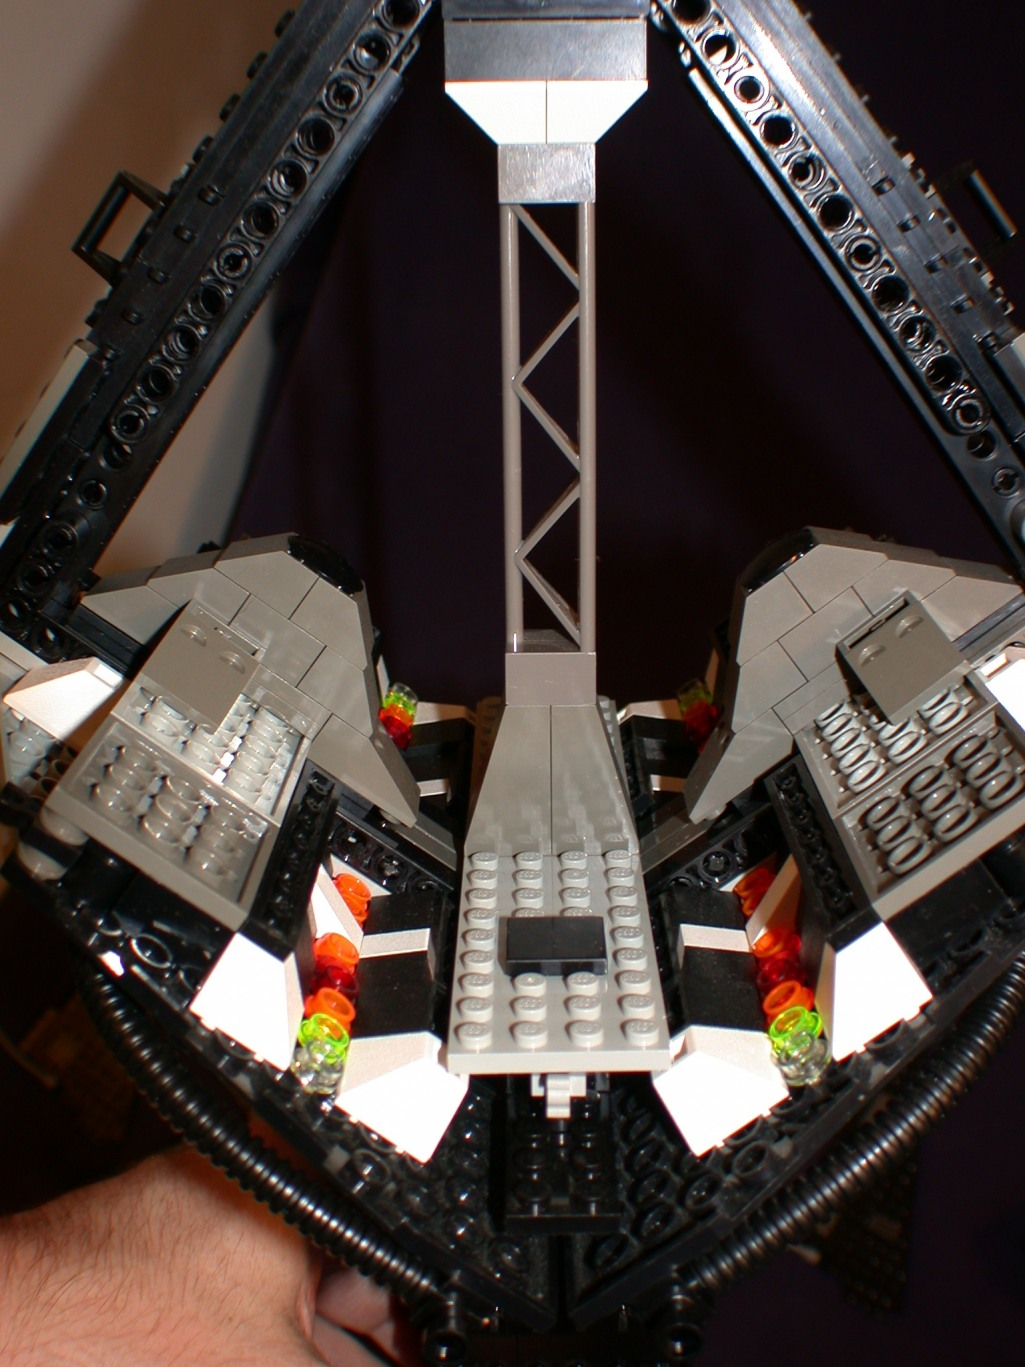 Dscn0675 from LEGO Space Mother Ship GallaghersArt_dscn0675.jpg